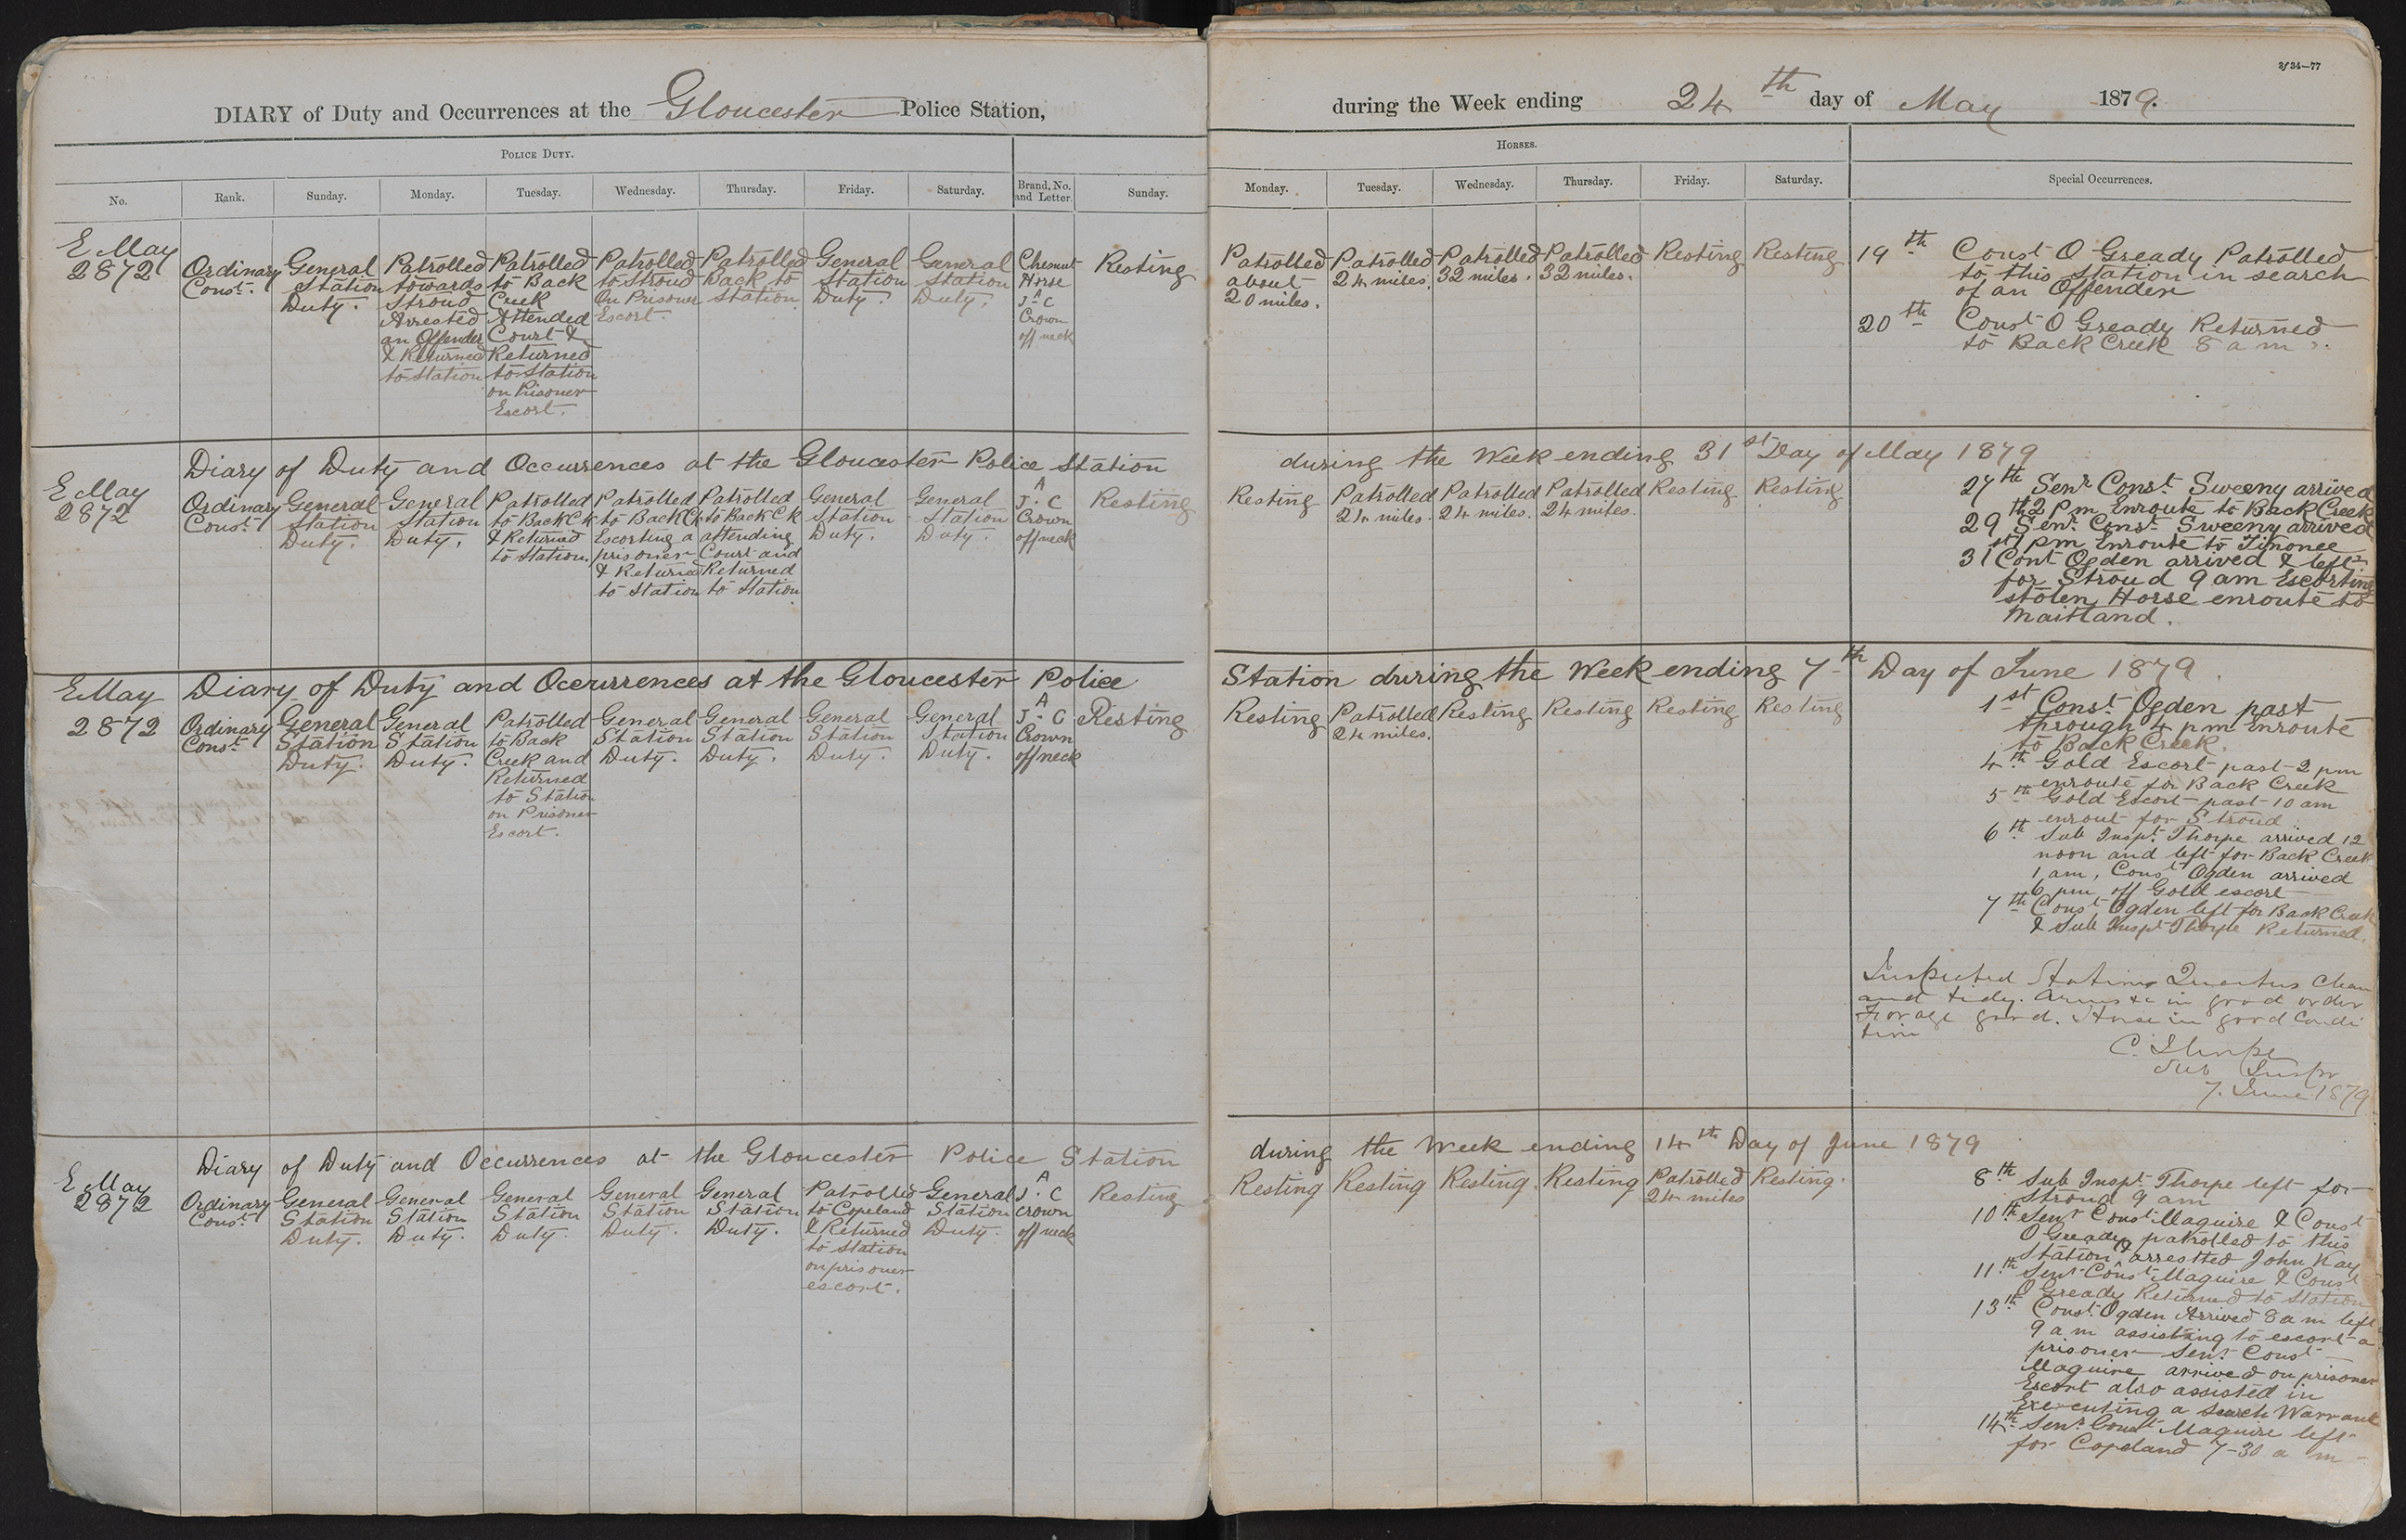 Diary of duty and occurrences at the Gloucester Police Station during the week ending the 24th day of May 1879